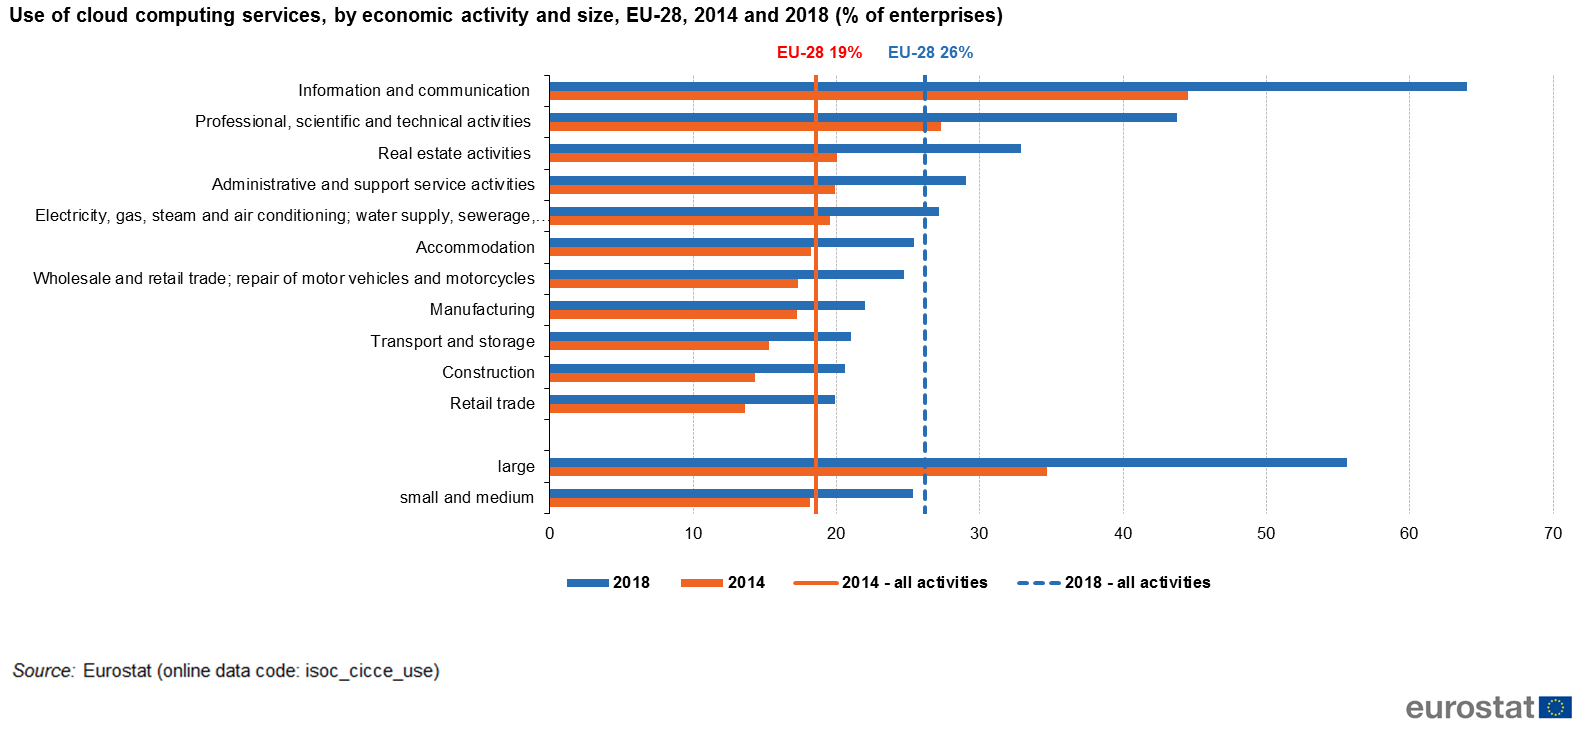 Figure 2: Use of cloud computing services, by economic activity and size,  EU-28, 2014 and 2018 (% of enterprises) - Source: Eurostat (isoc_cicce_use)